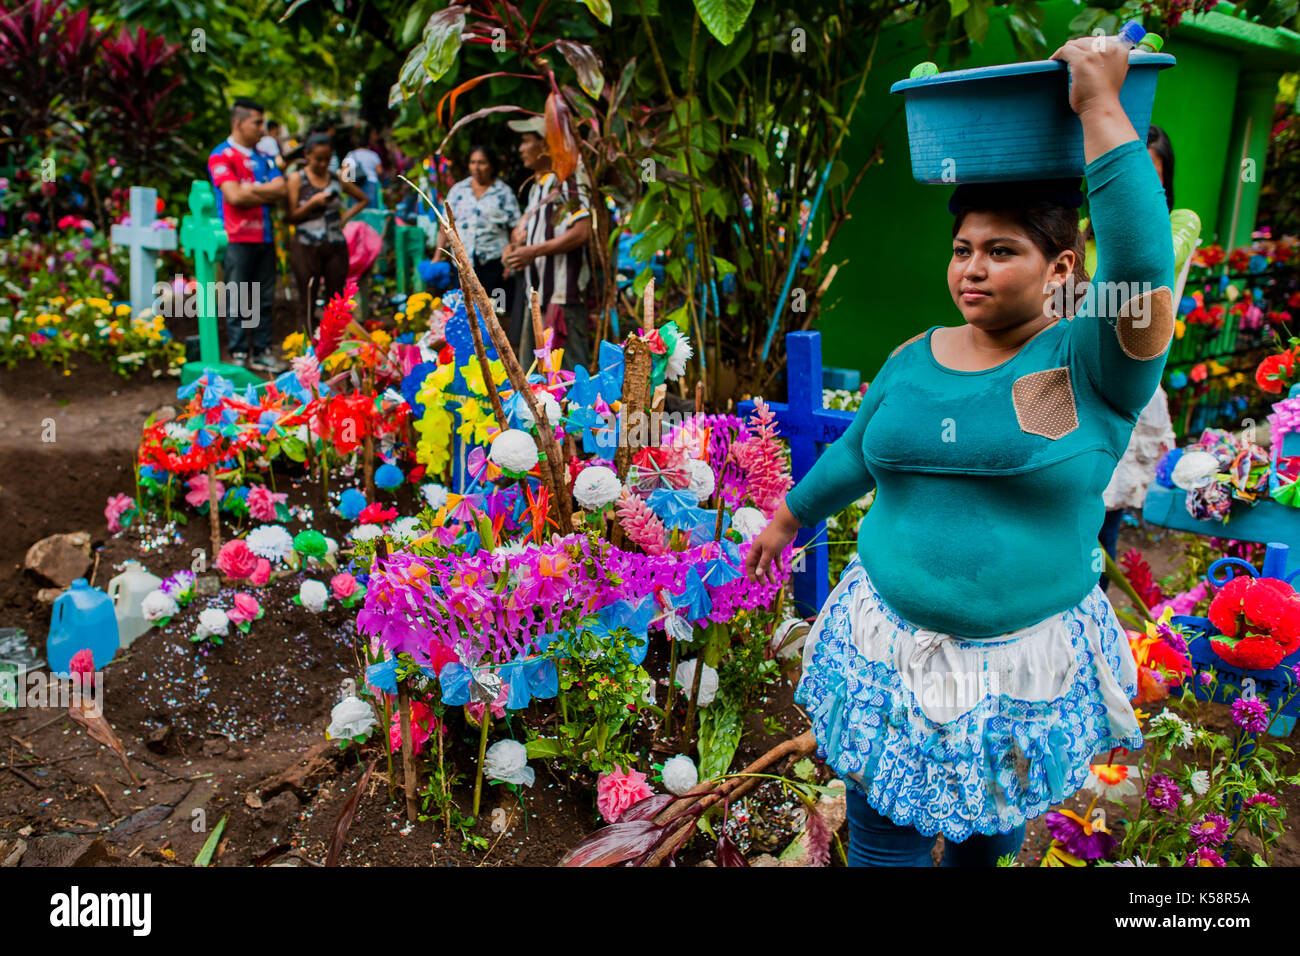 A Salvadoran vendor passes through the gravesites decorated with colorful flowers during the Day of the Dead celebration at the cemetery in Izalco, El - Stock Image